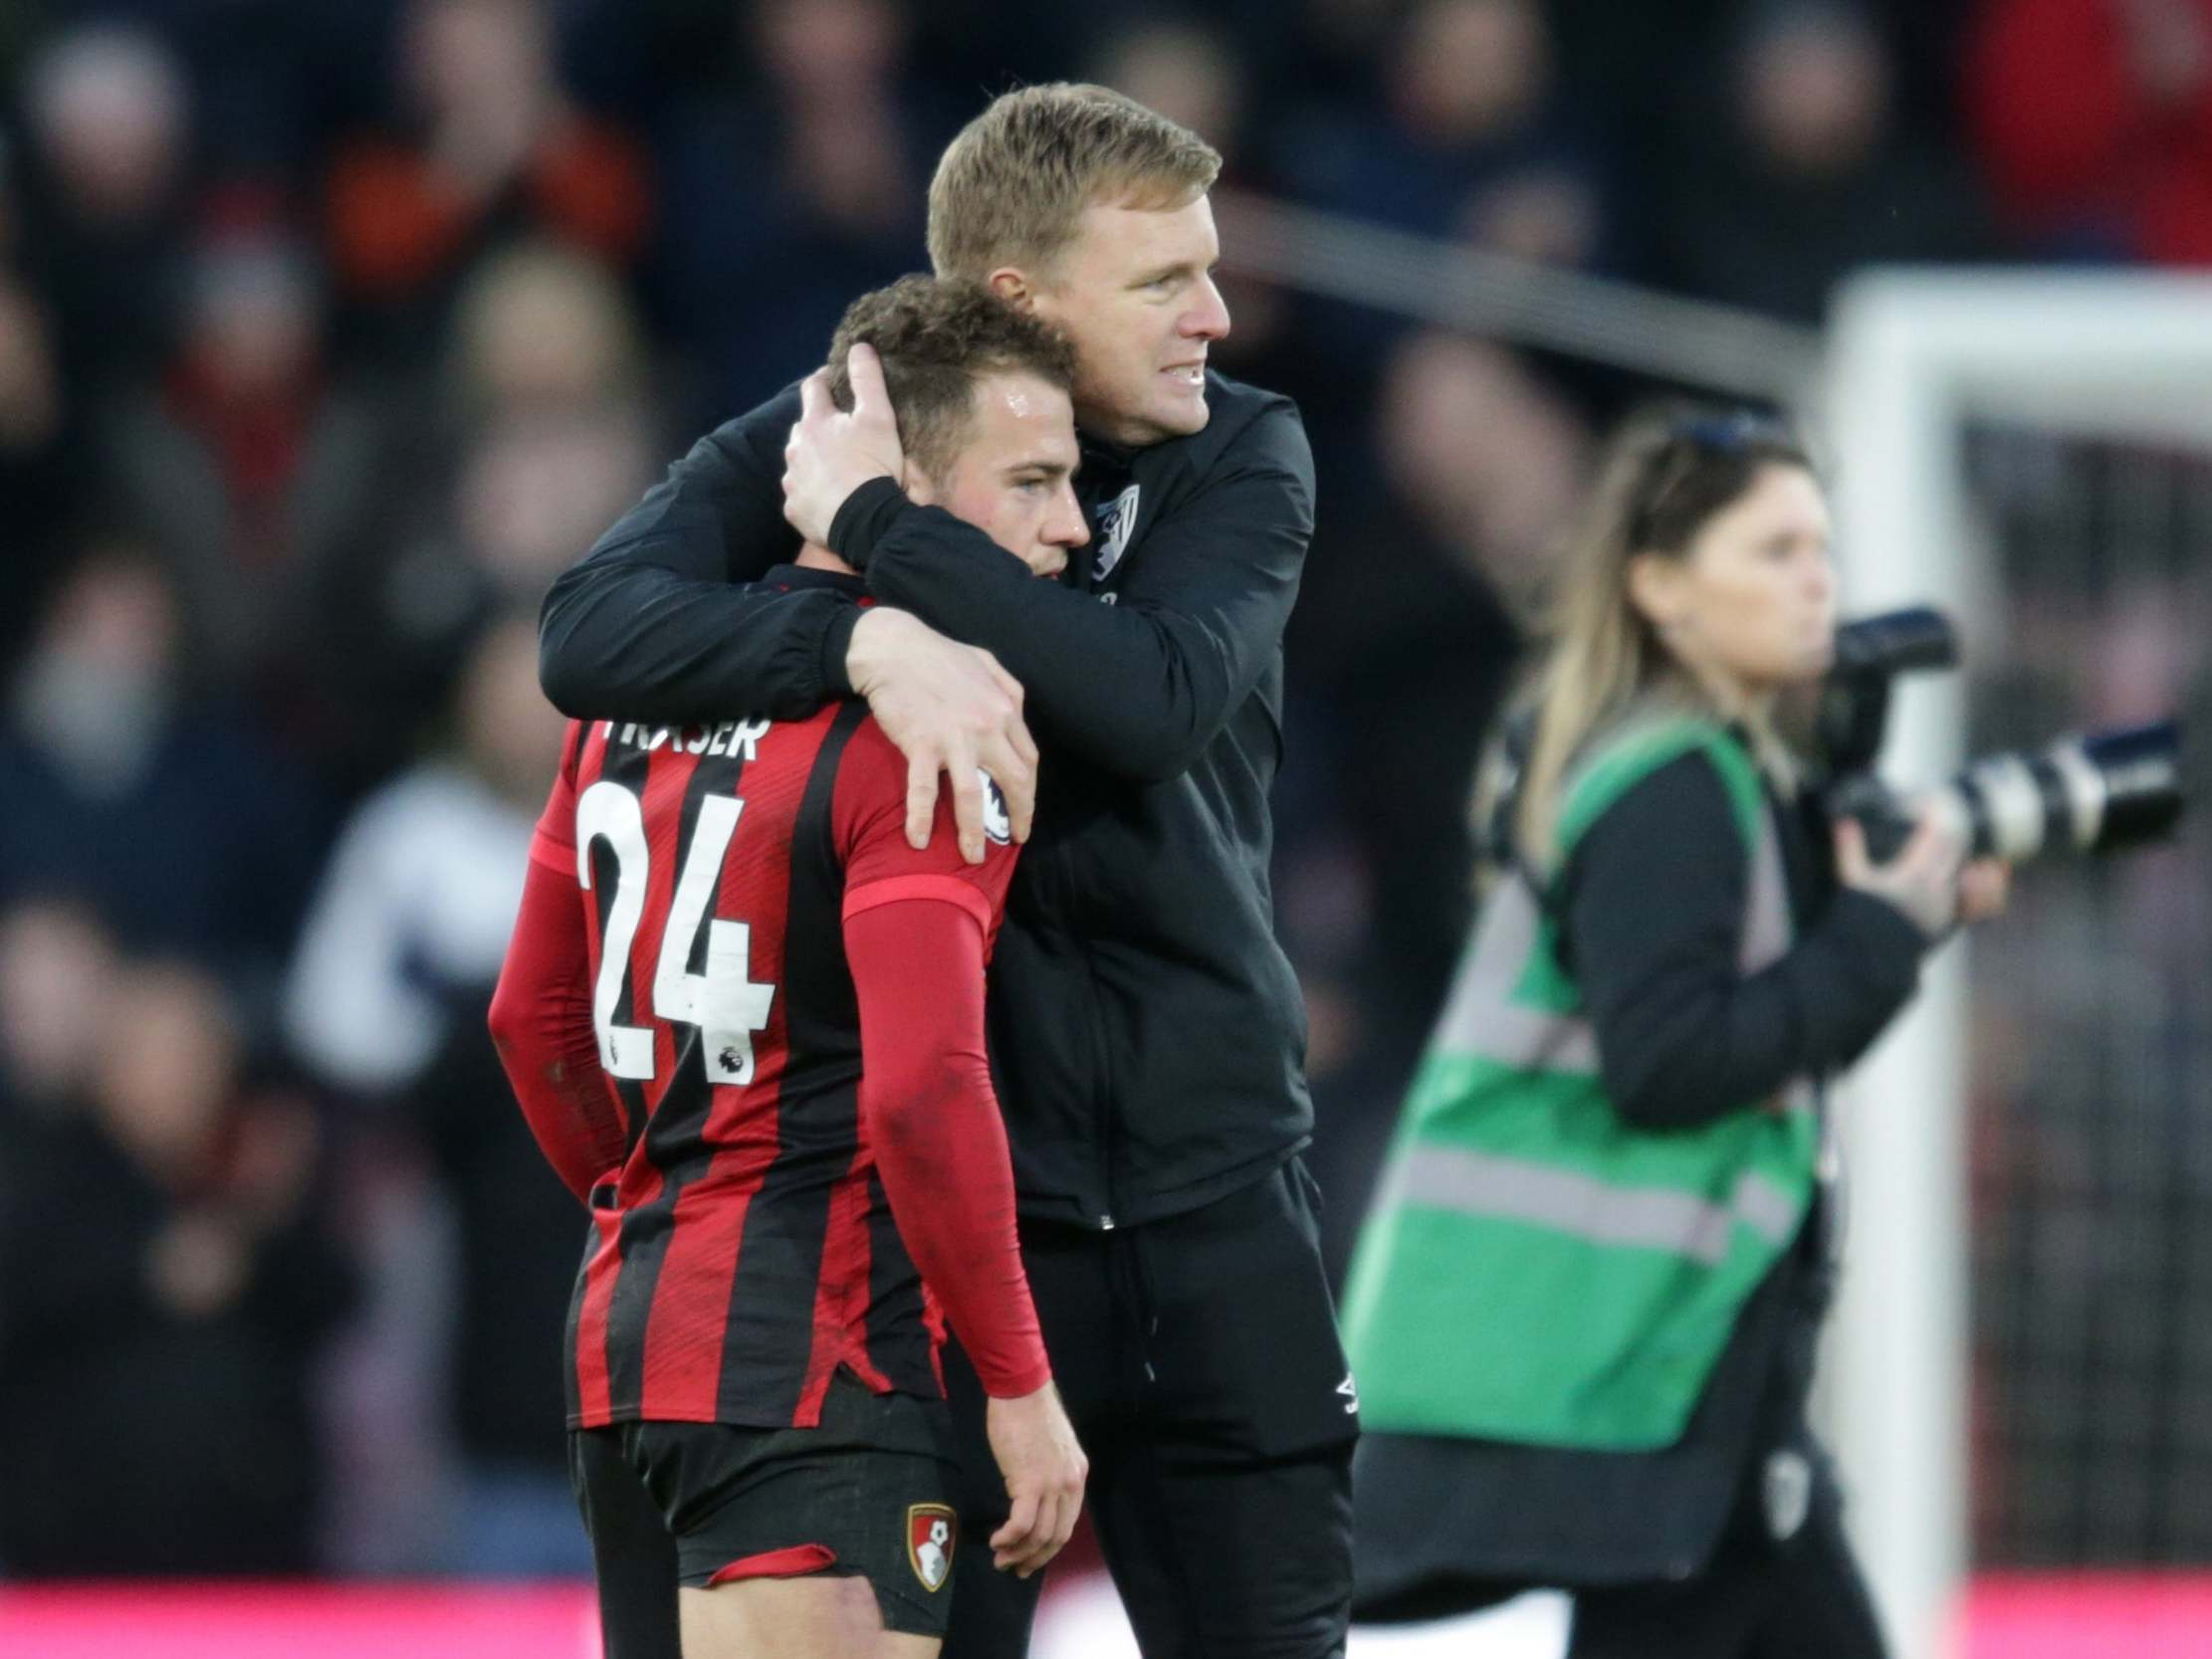 Bournemouth vs Crystal Palace predicted line-ups: Team news ahead of Premier League fixture tonight thumbnail